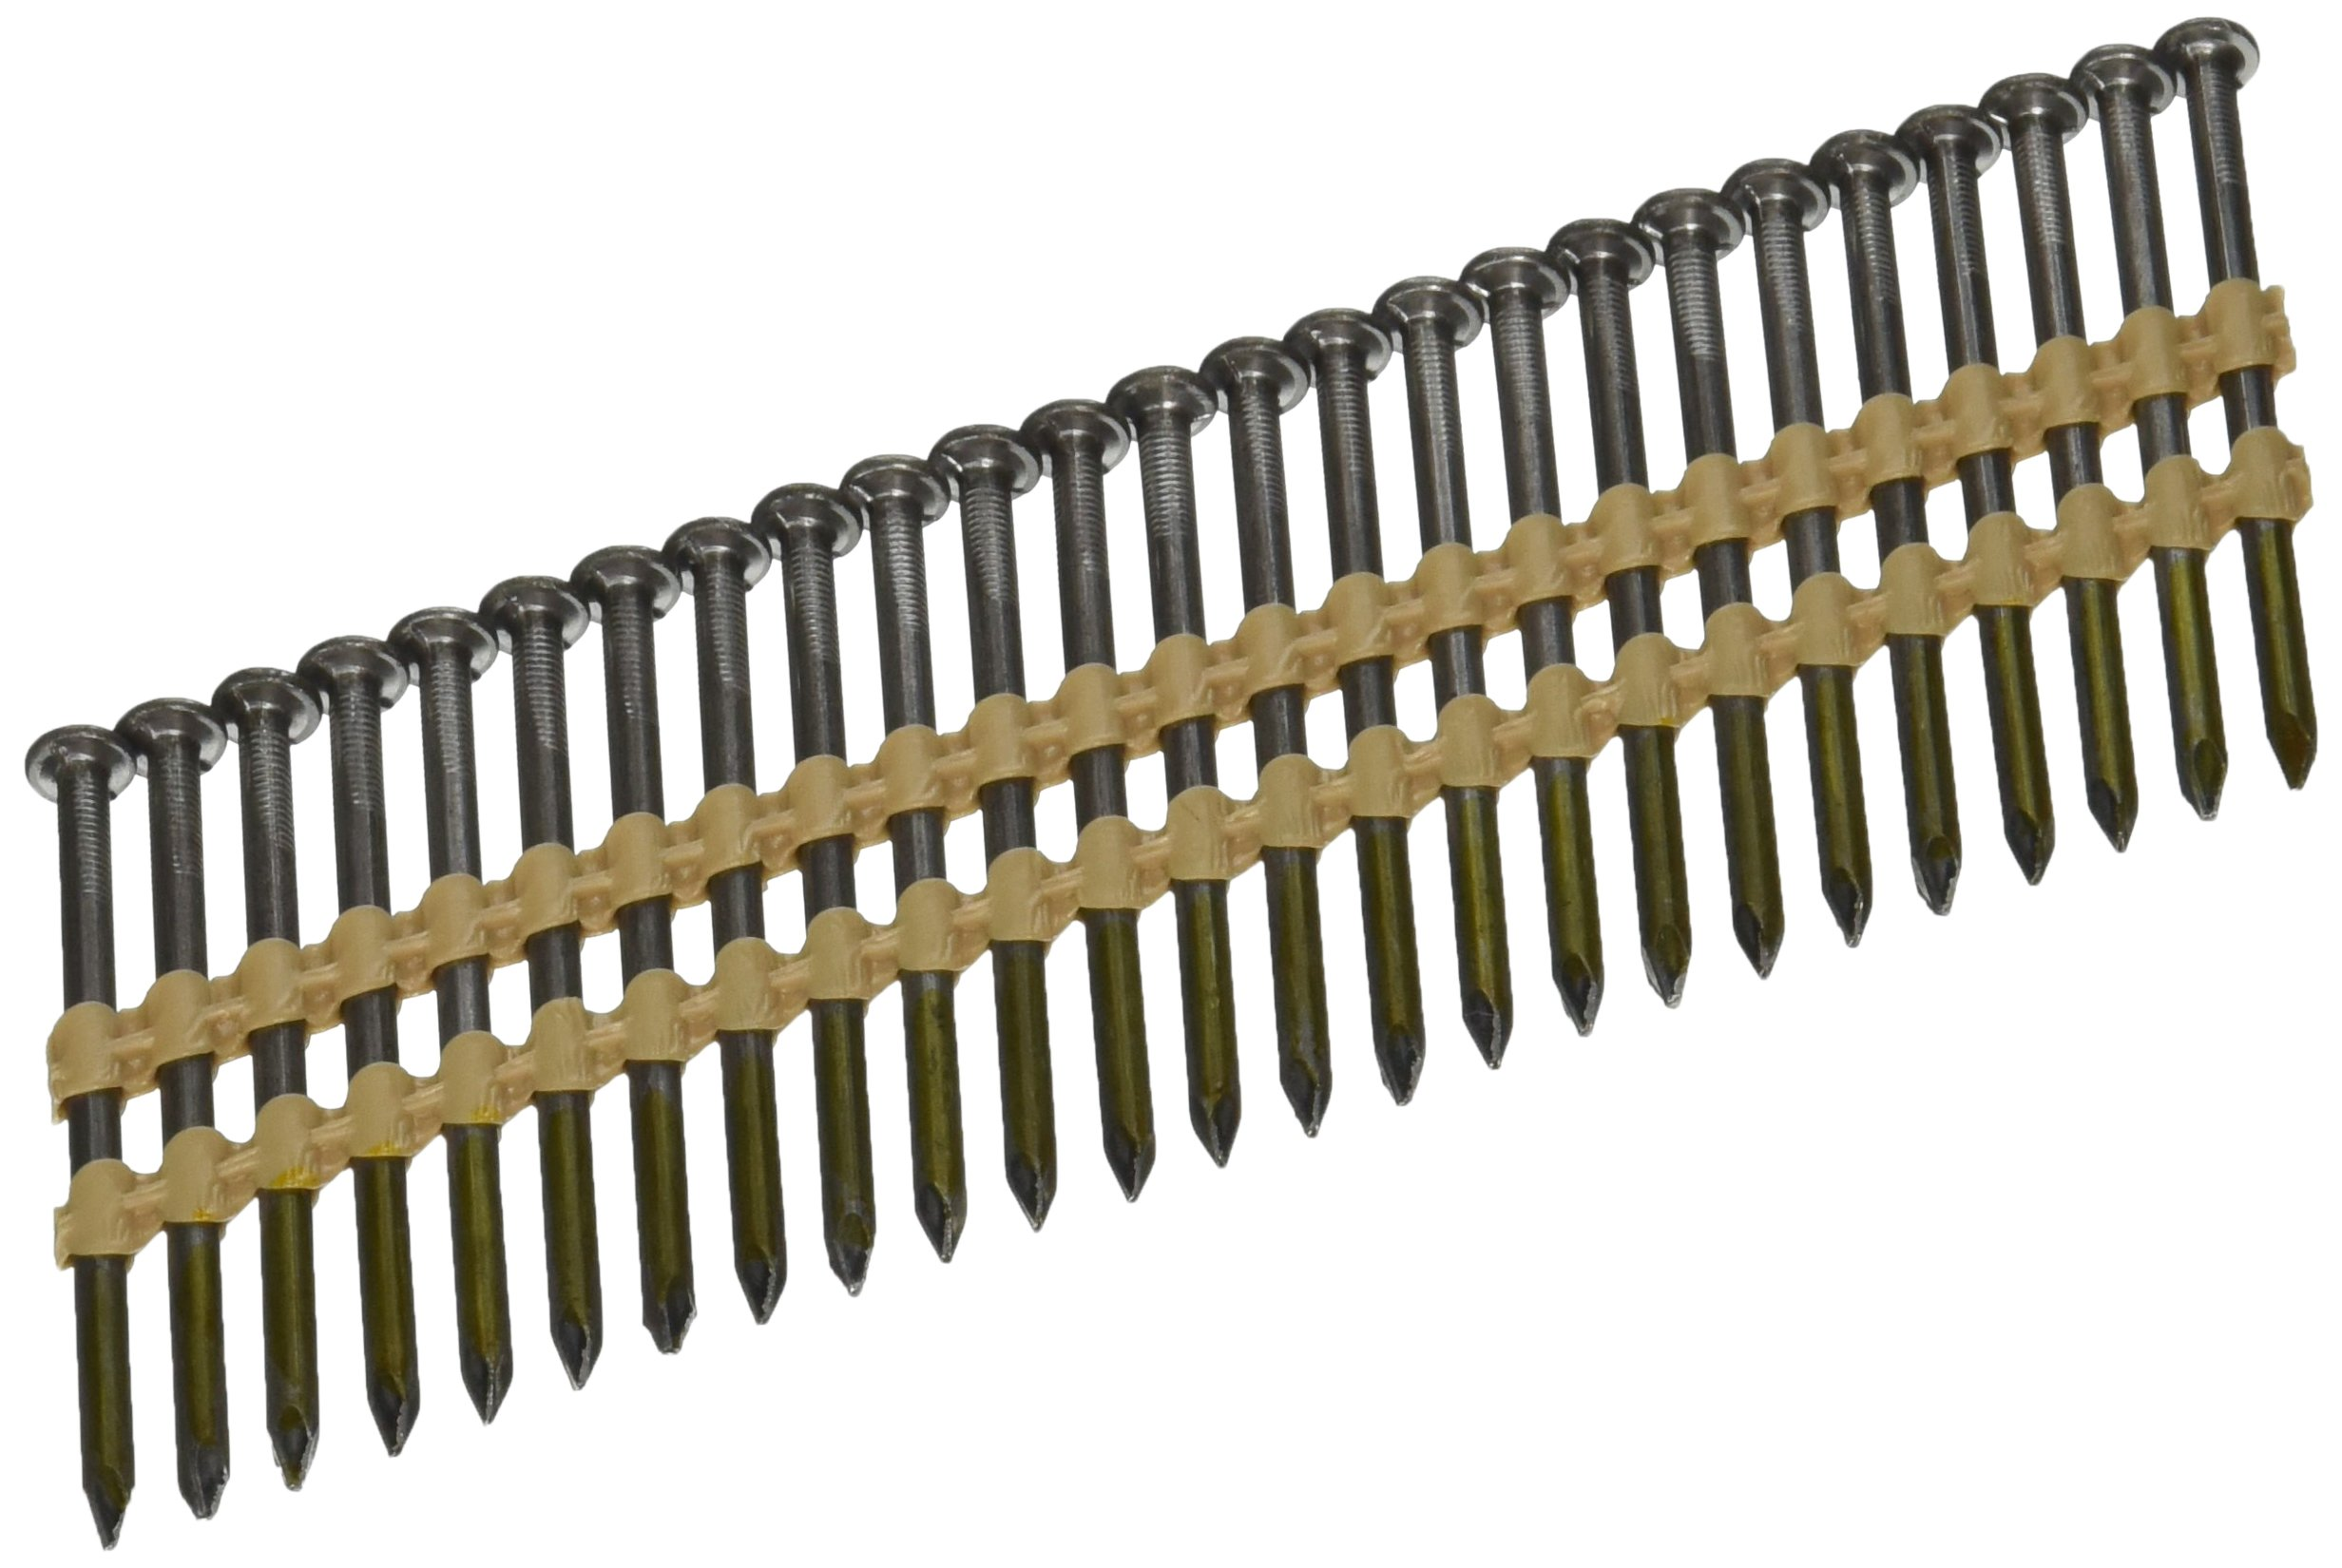 Hitachi 20132S Hitachi 20132S 2 1/2-in X .131 Bright Smooth Shank Plastic Collated Nails,